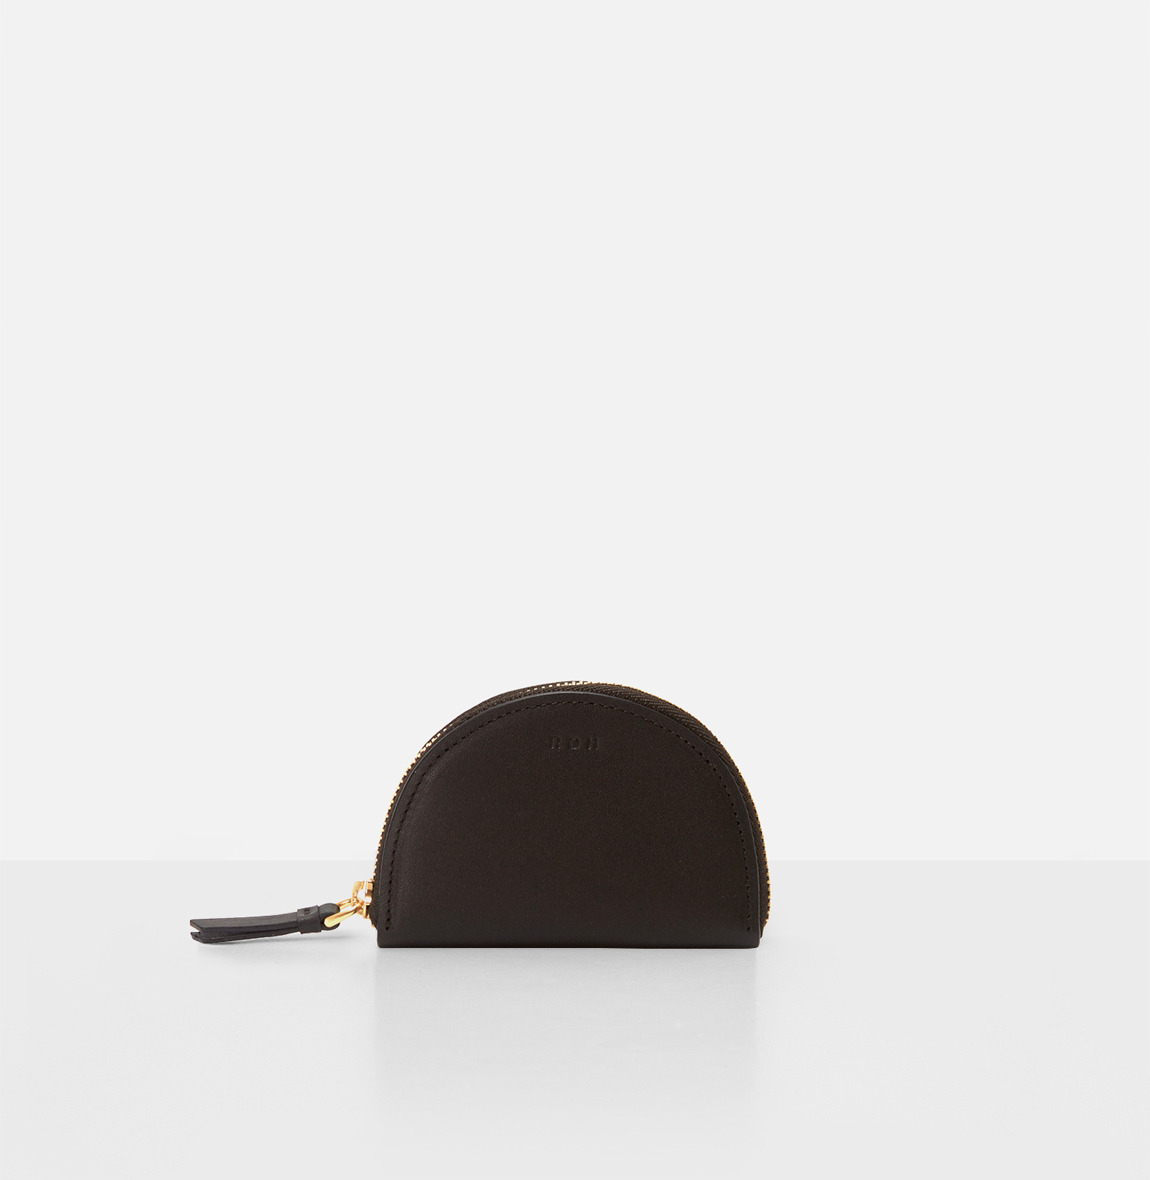 [19FW NEW] Half moon coin zip wallet Umber